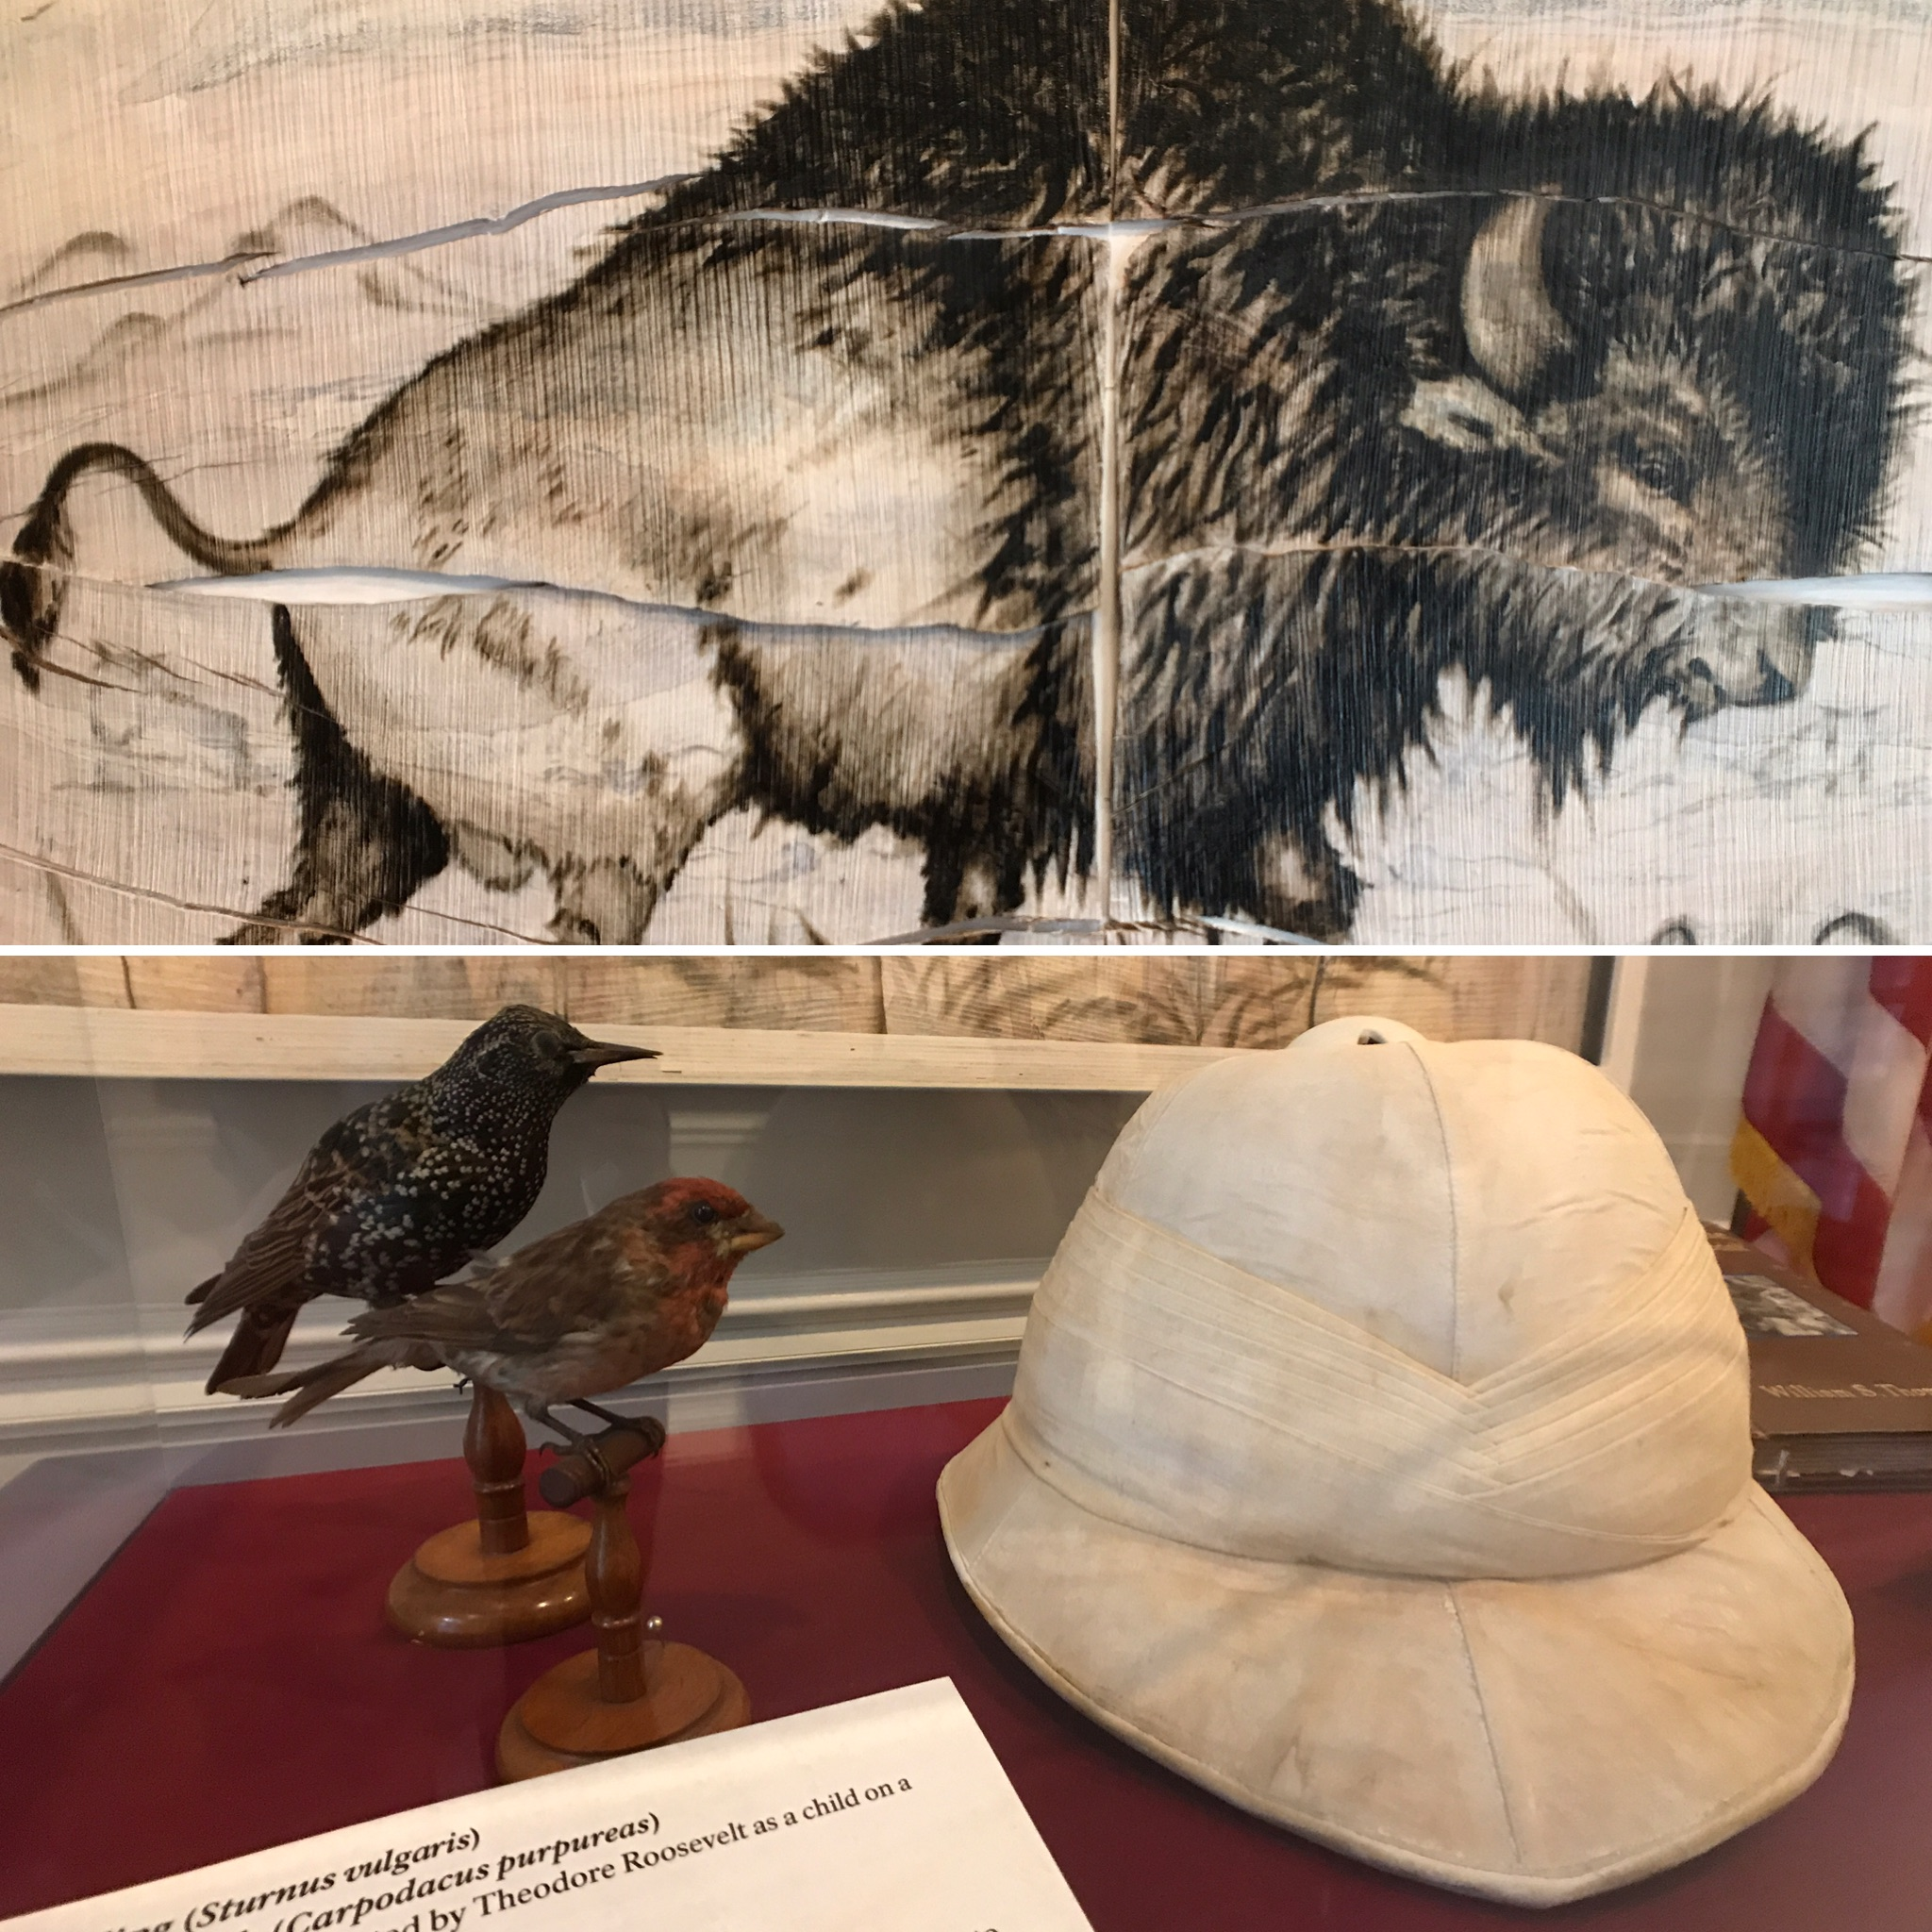 Artwork depicting a bison, stuffed birds and Roosevelt's pith helmet.